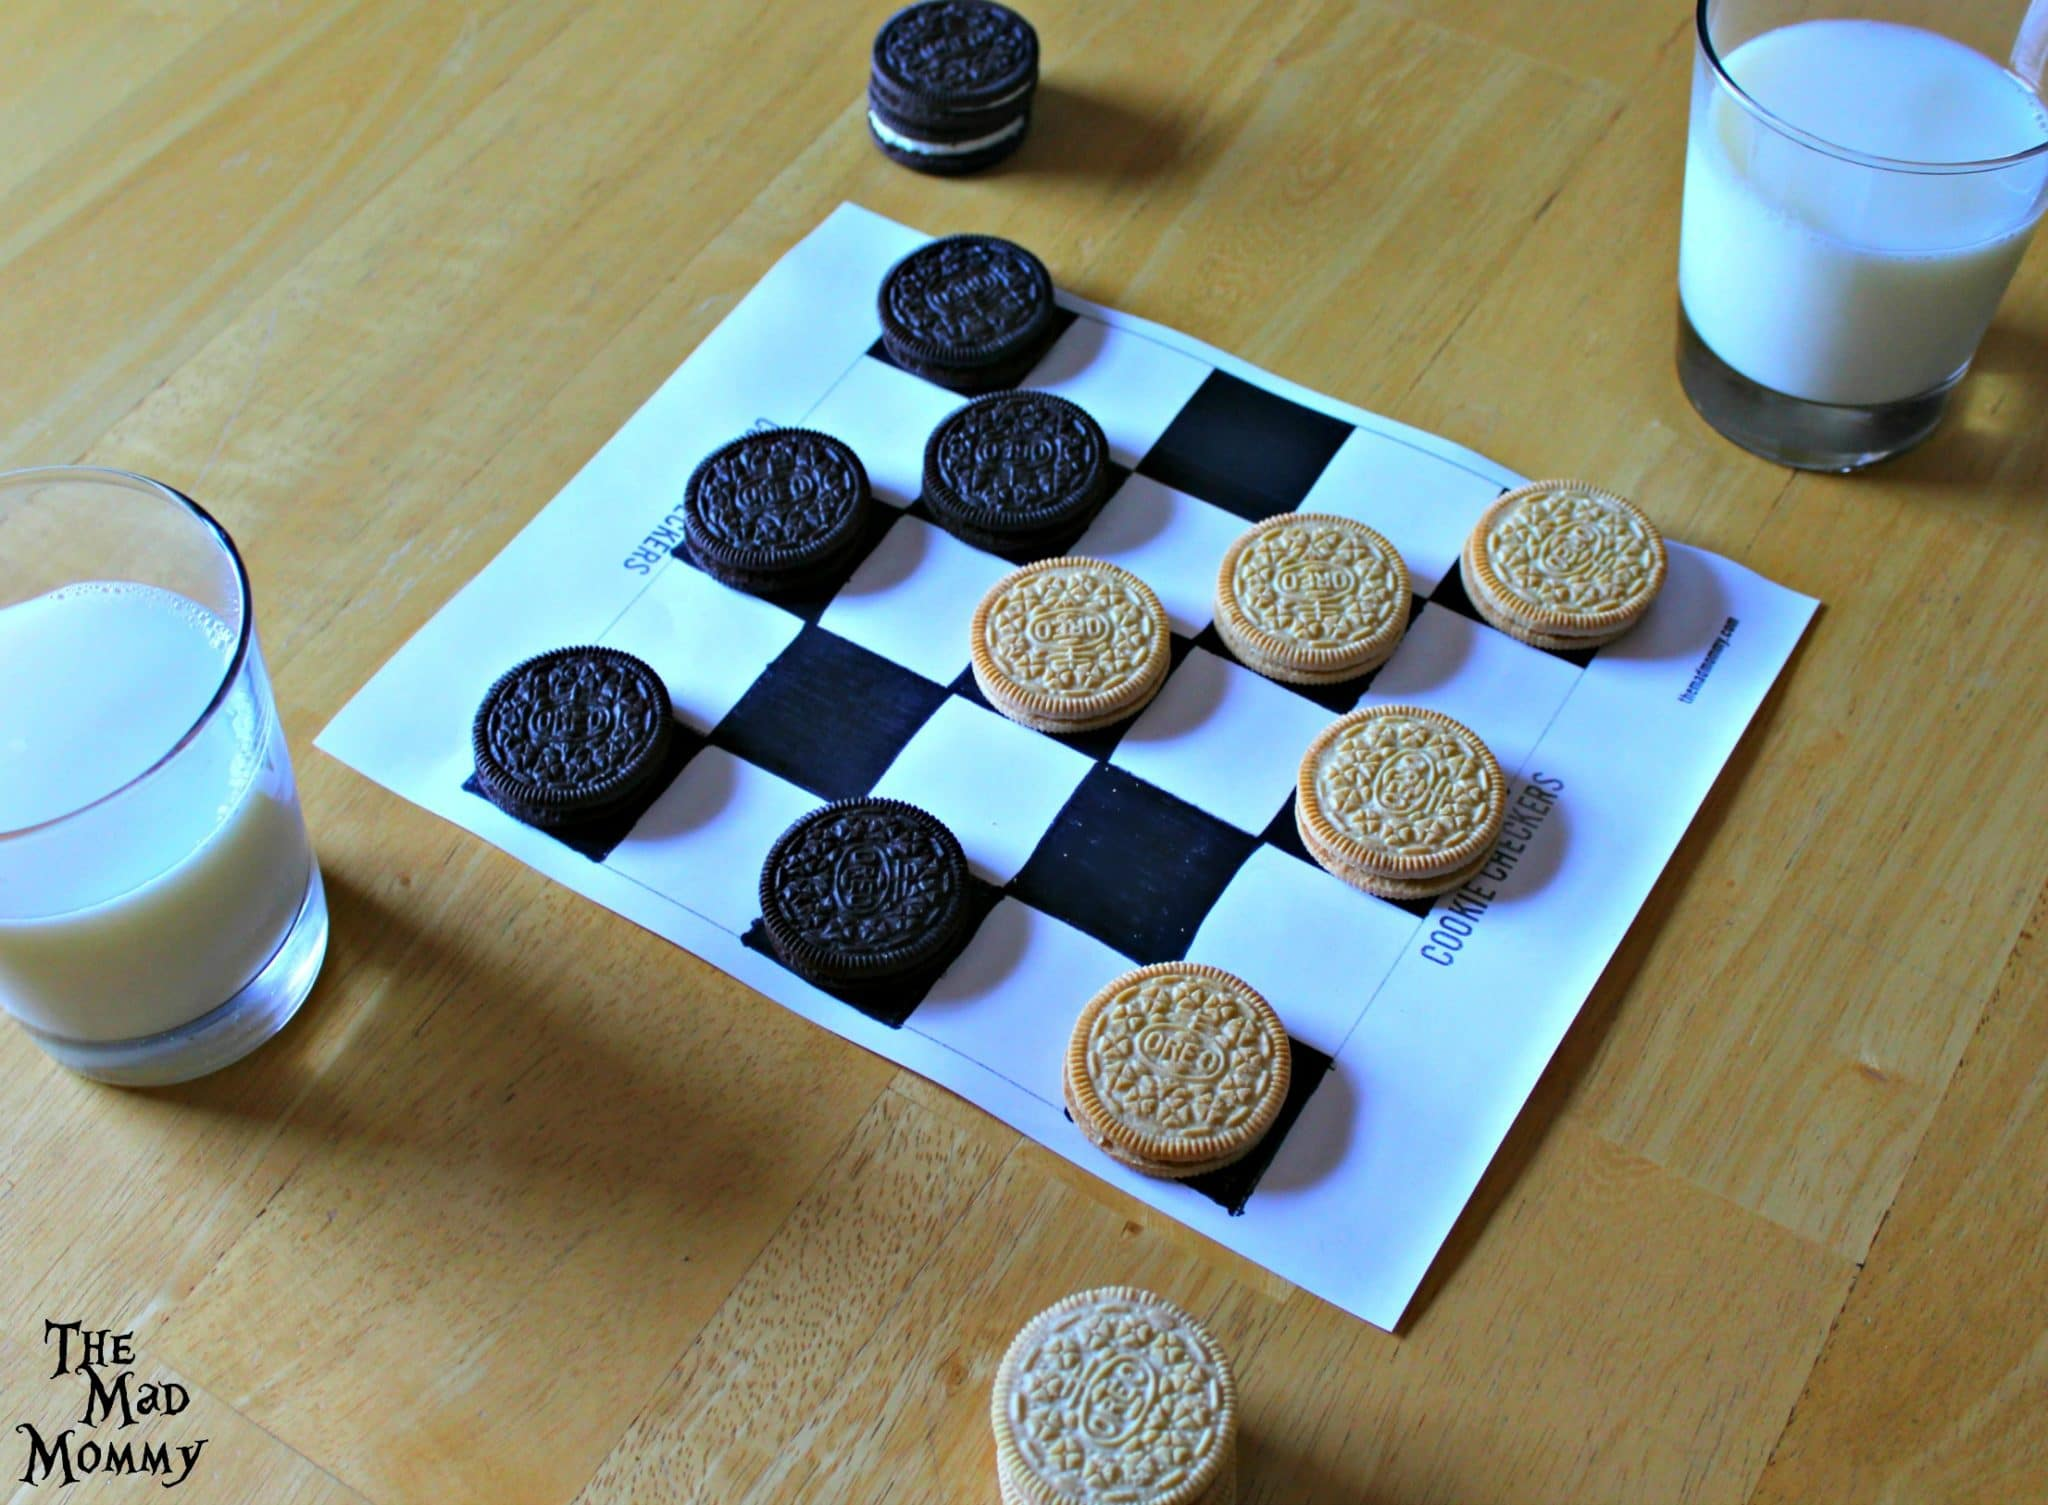 Playing some OREO Cookie Checkers and getting our #OREOSuperDunk on! #Sponsored #CollectiveBias